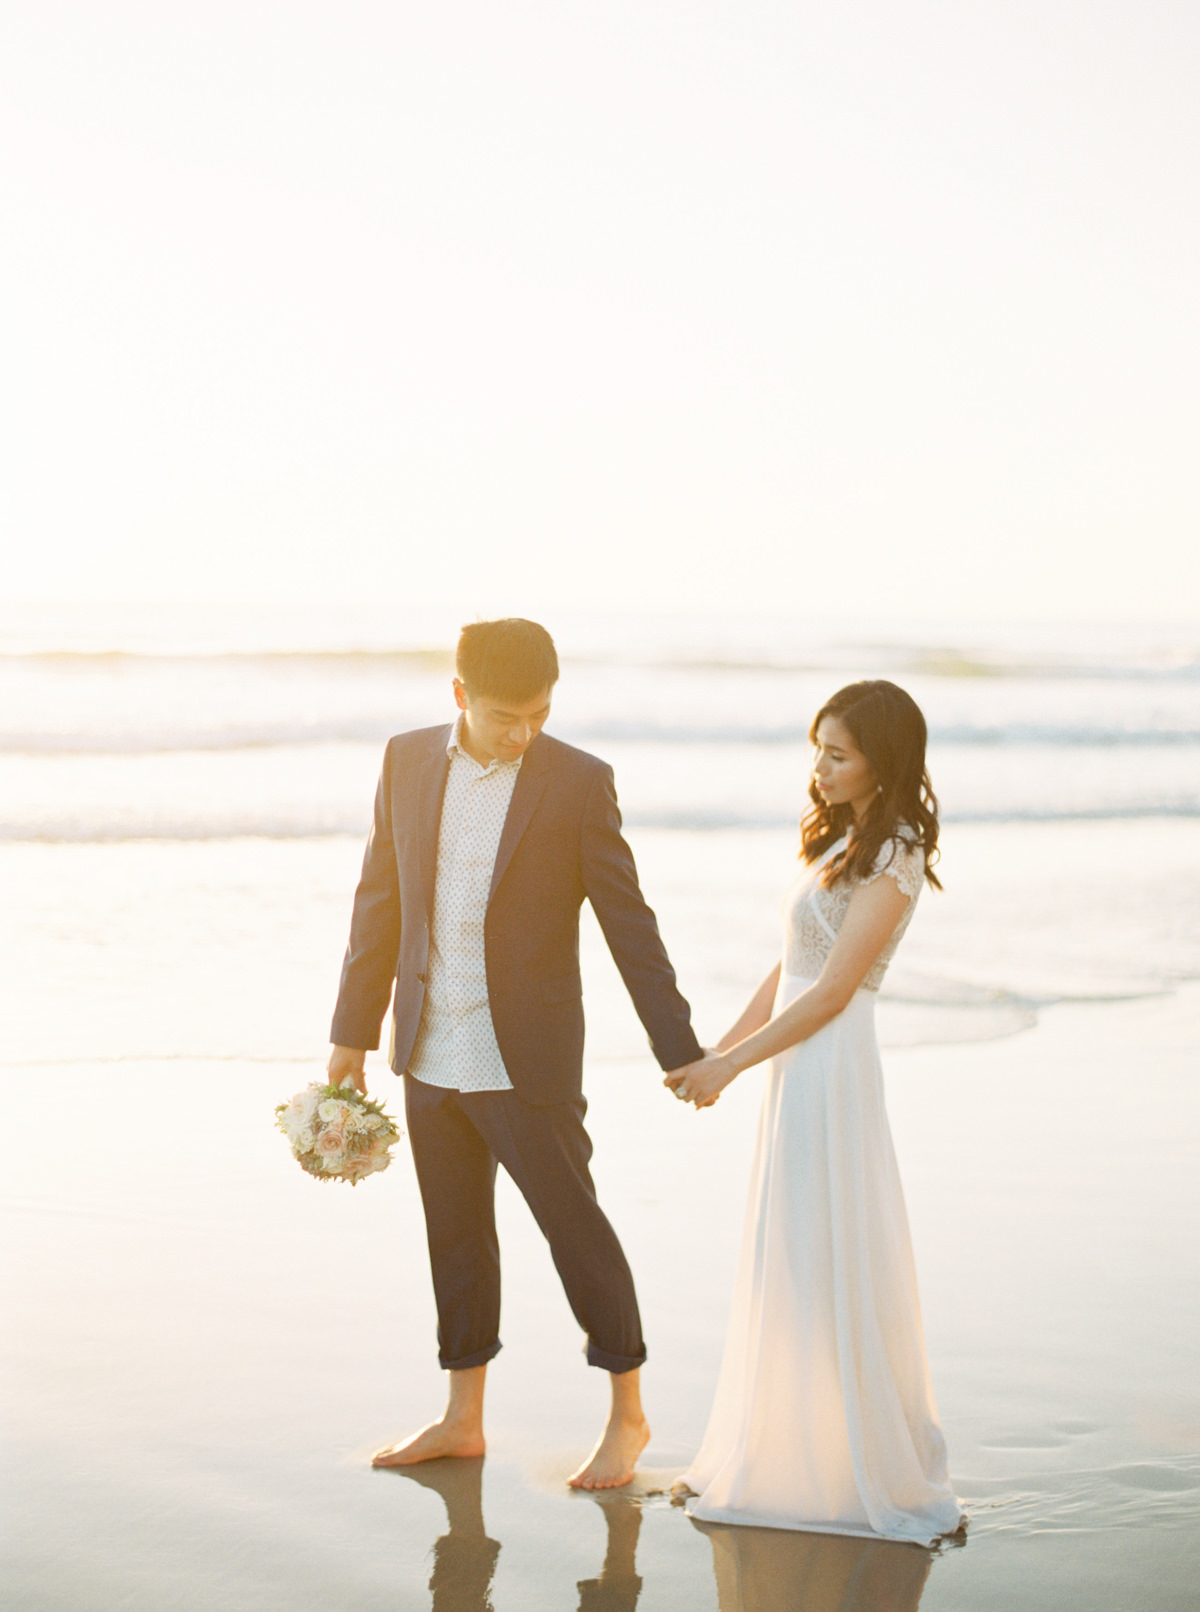 california sunset beach engagement photo by Matoli Keely Photography